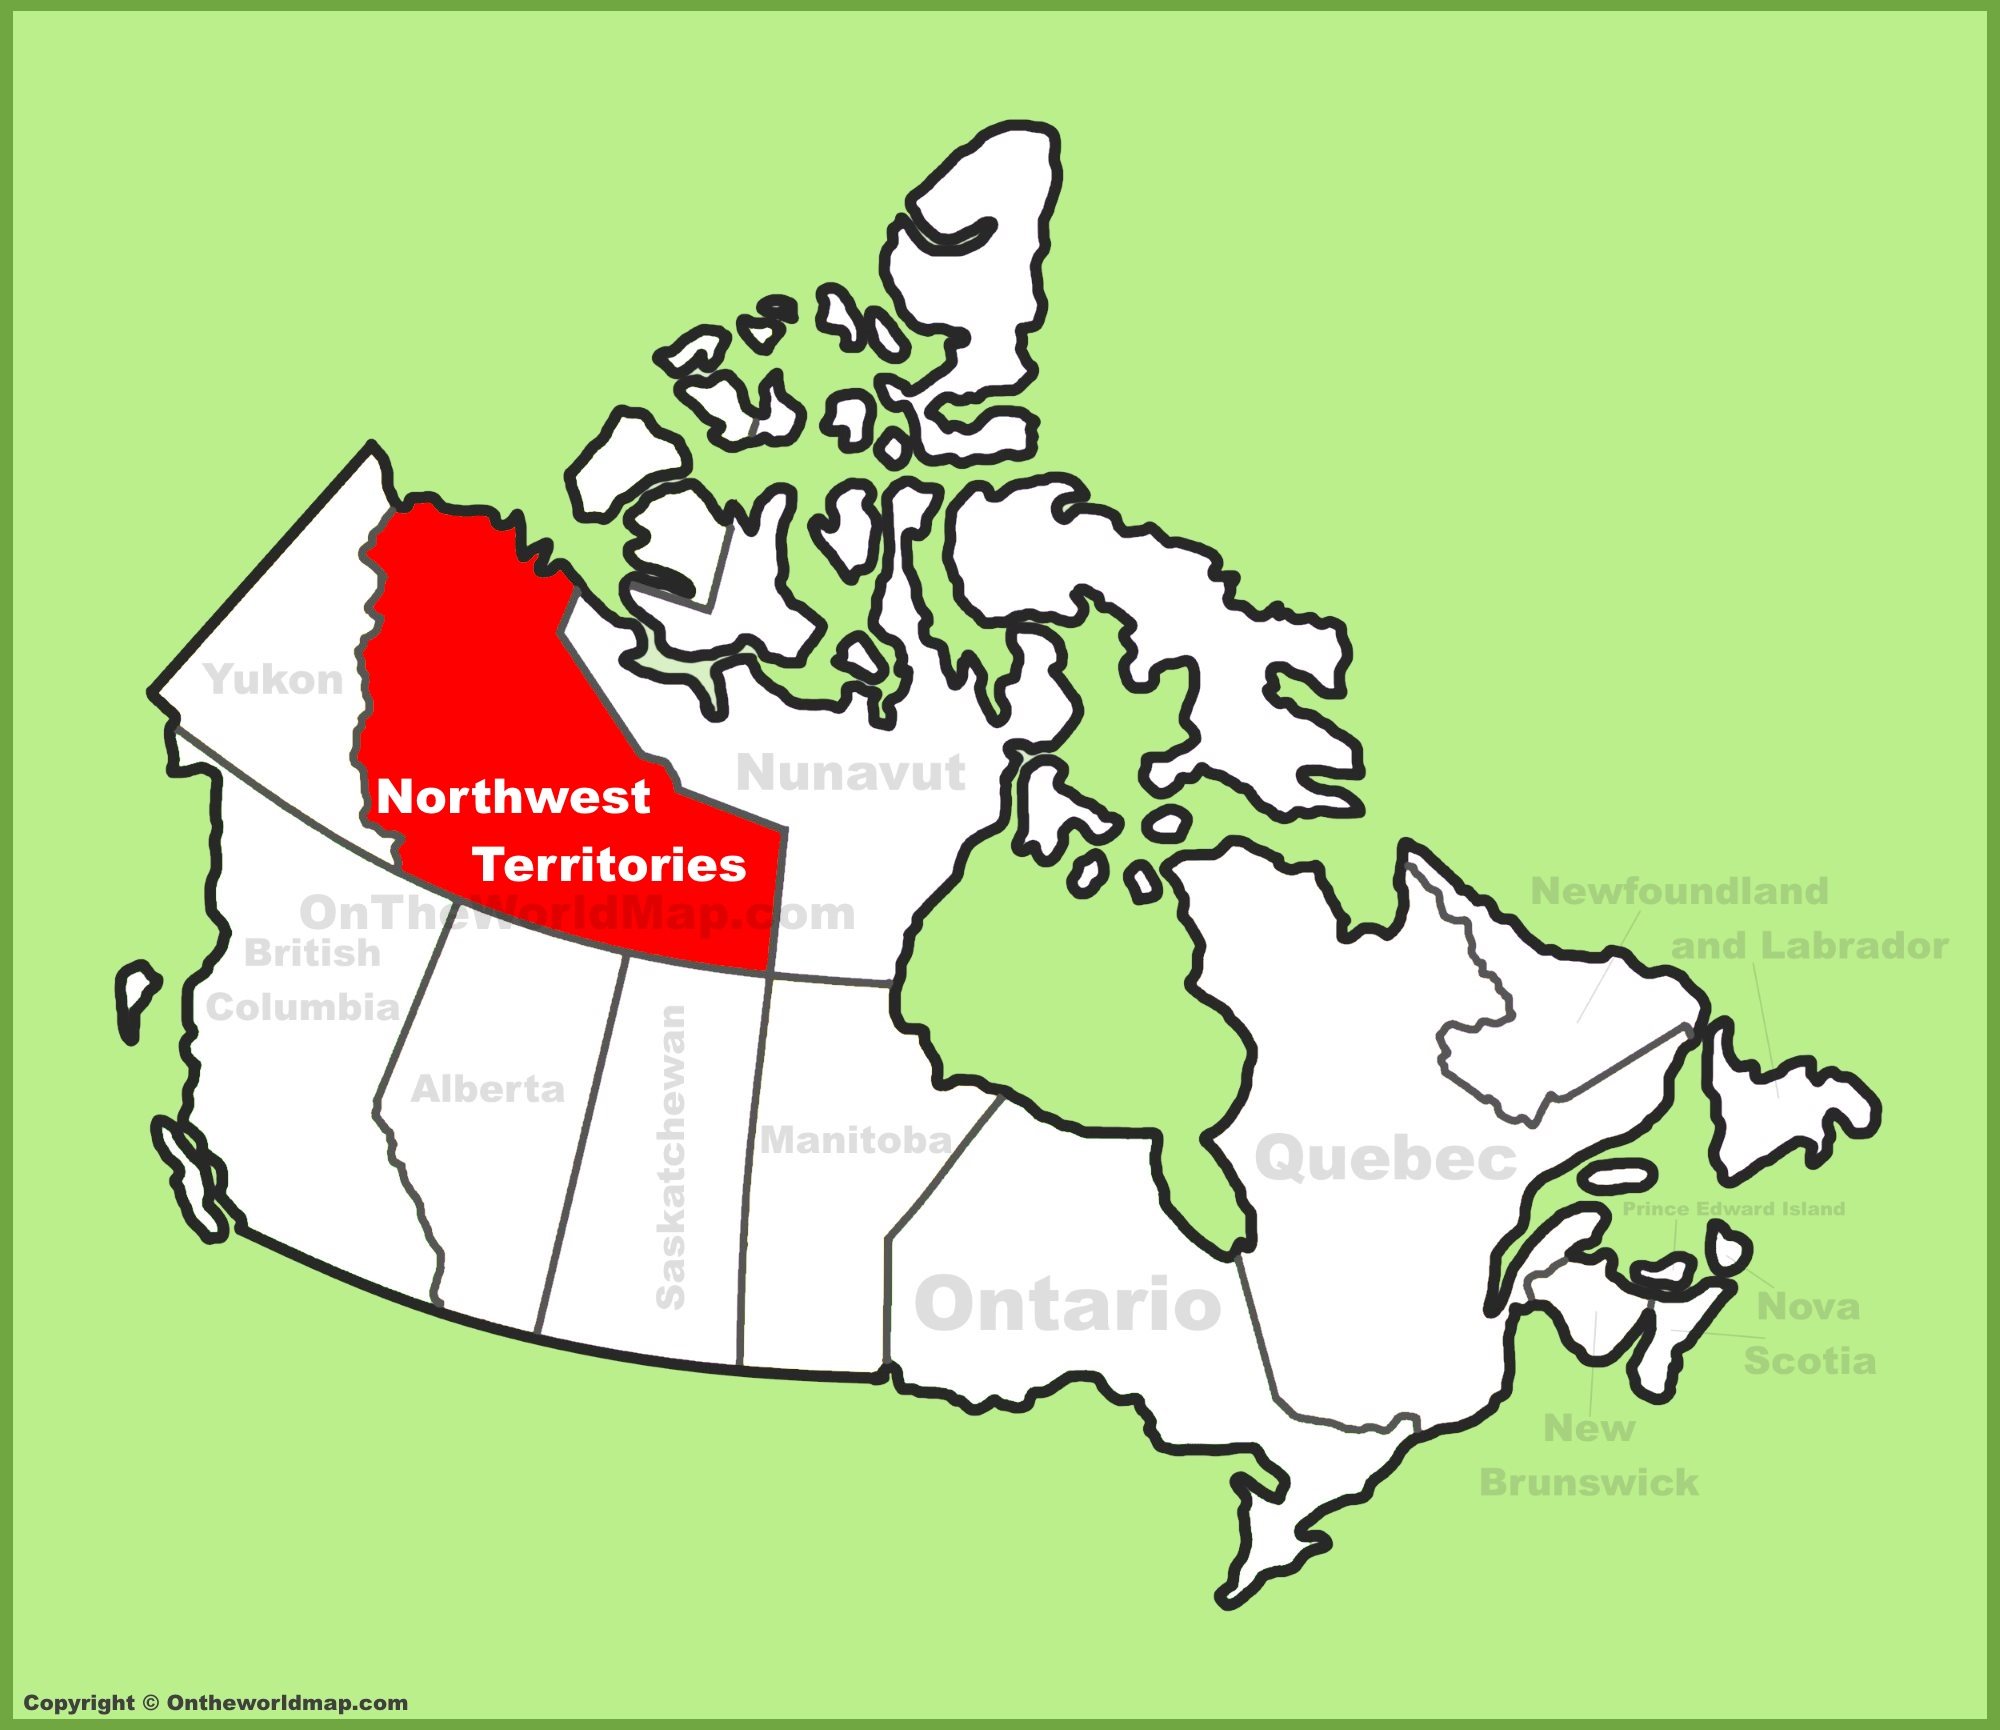 Northwest Territories location on the Canada Map